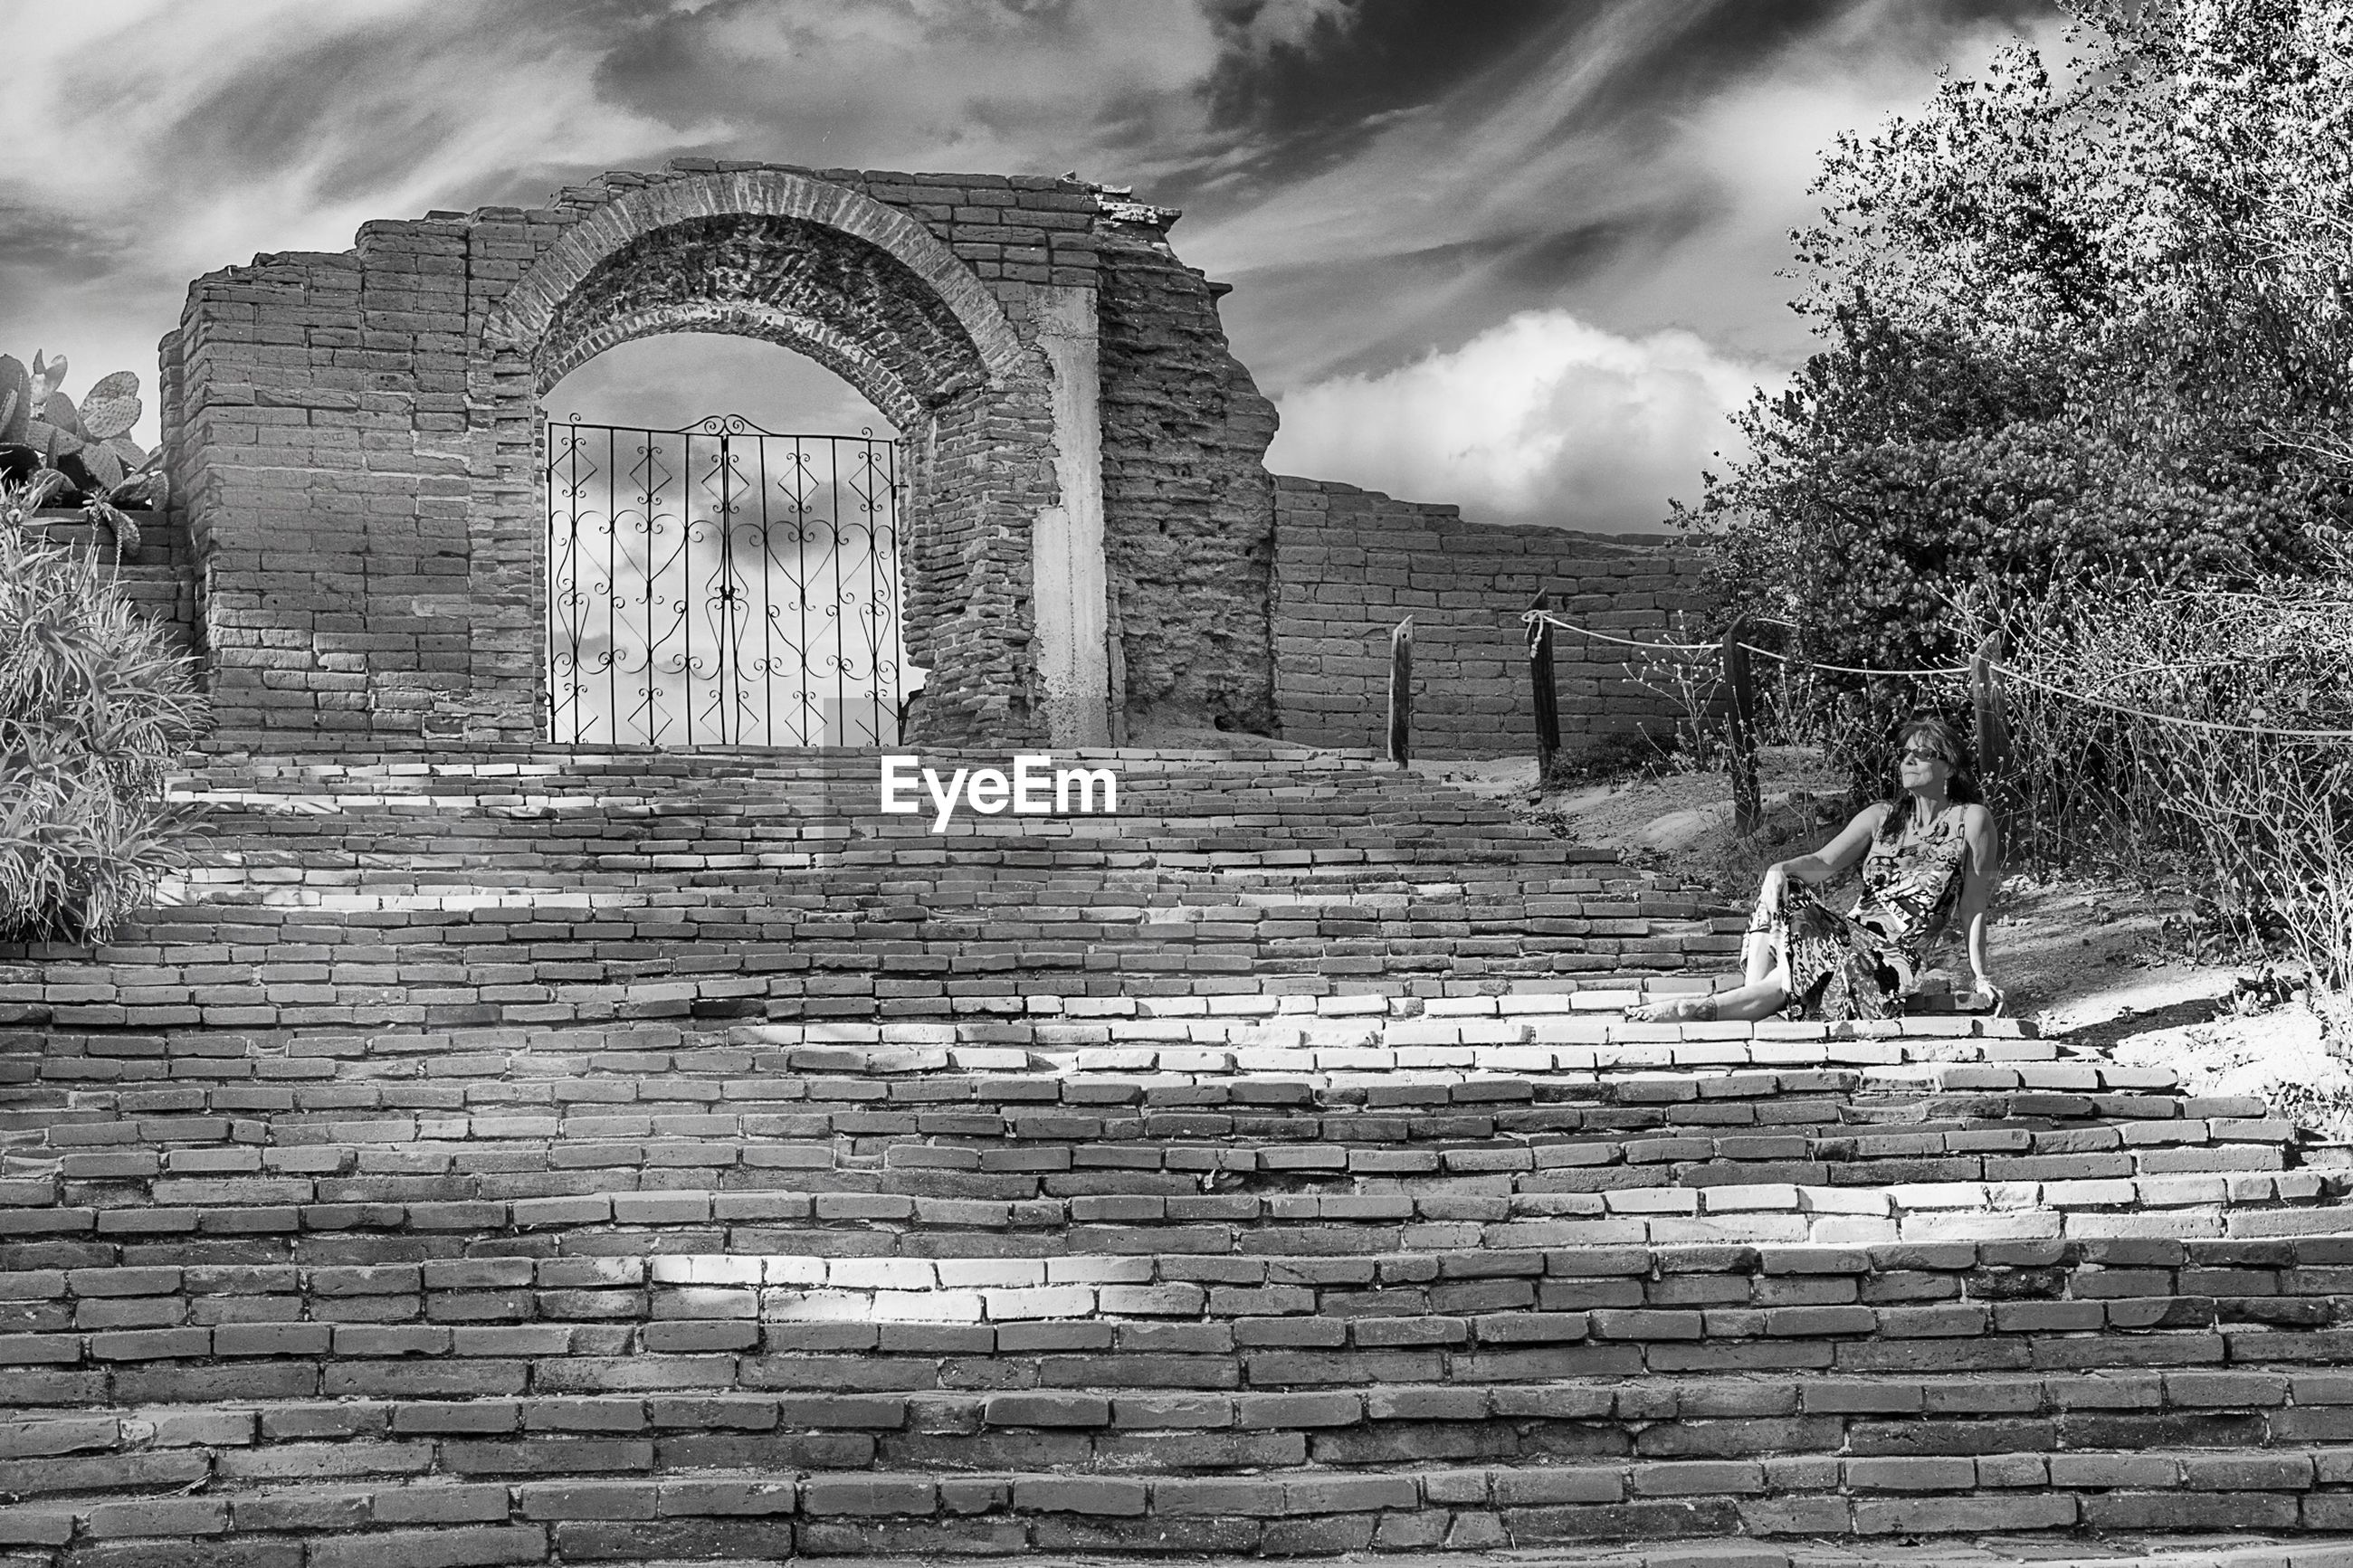 architecture, built structure, sky, building exterior, tree, cloud - sky, brick wall, stone wall, arch, day, wall - building feature, gate, outdoors, cloud, old, entrance, cloudy, steps, plant, low angle view